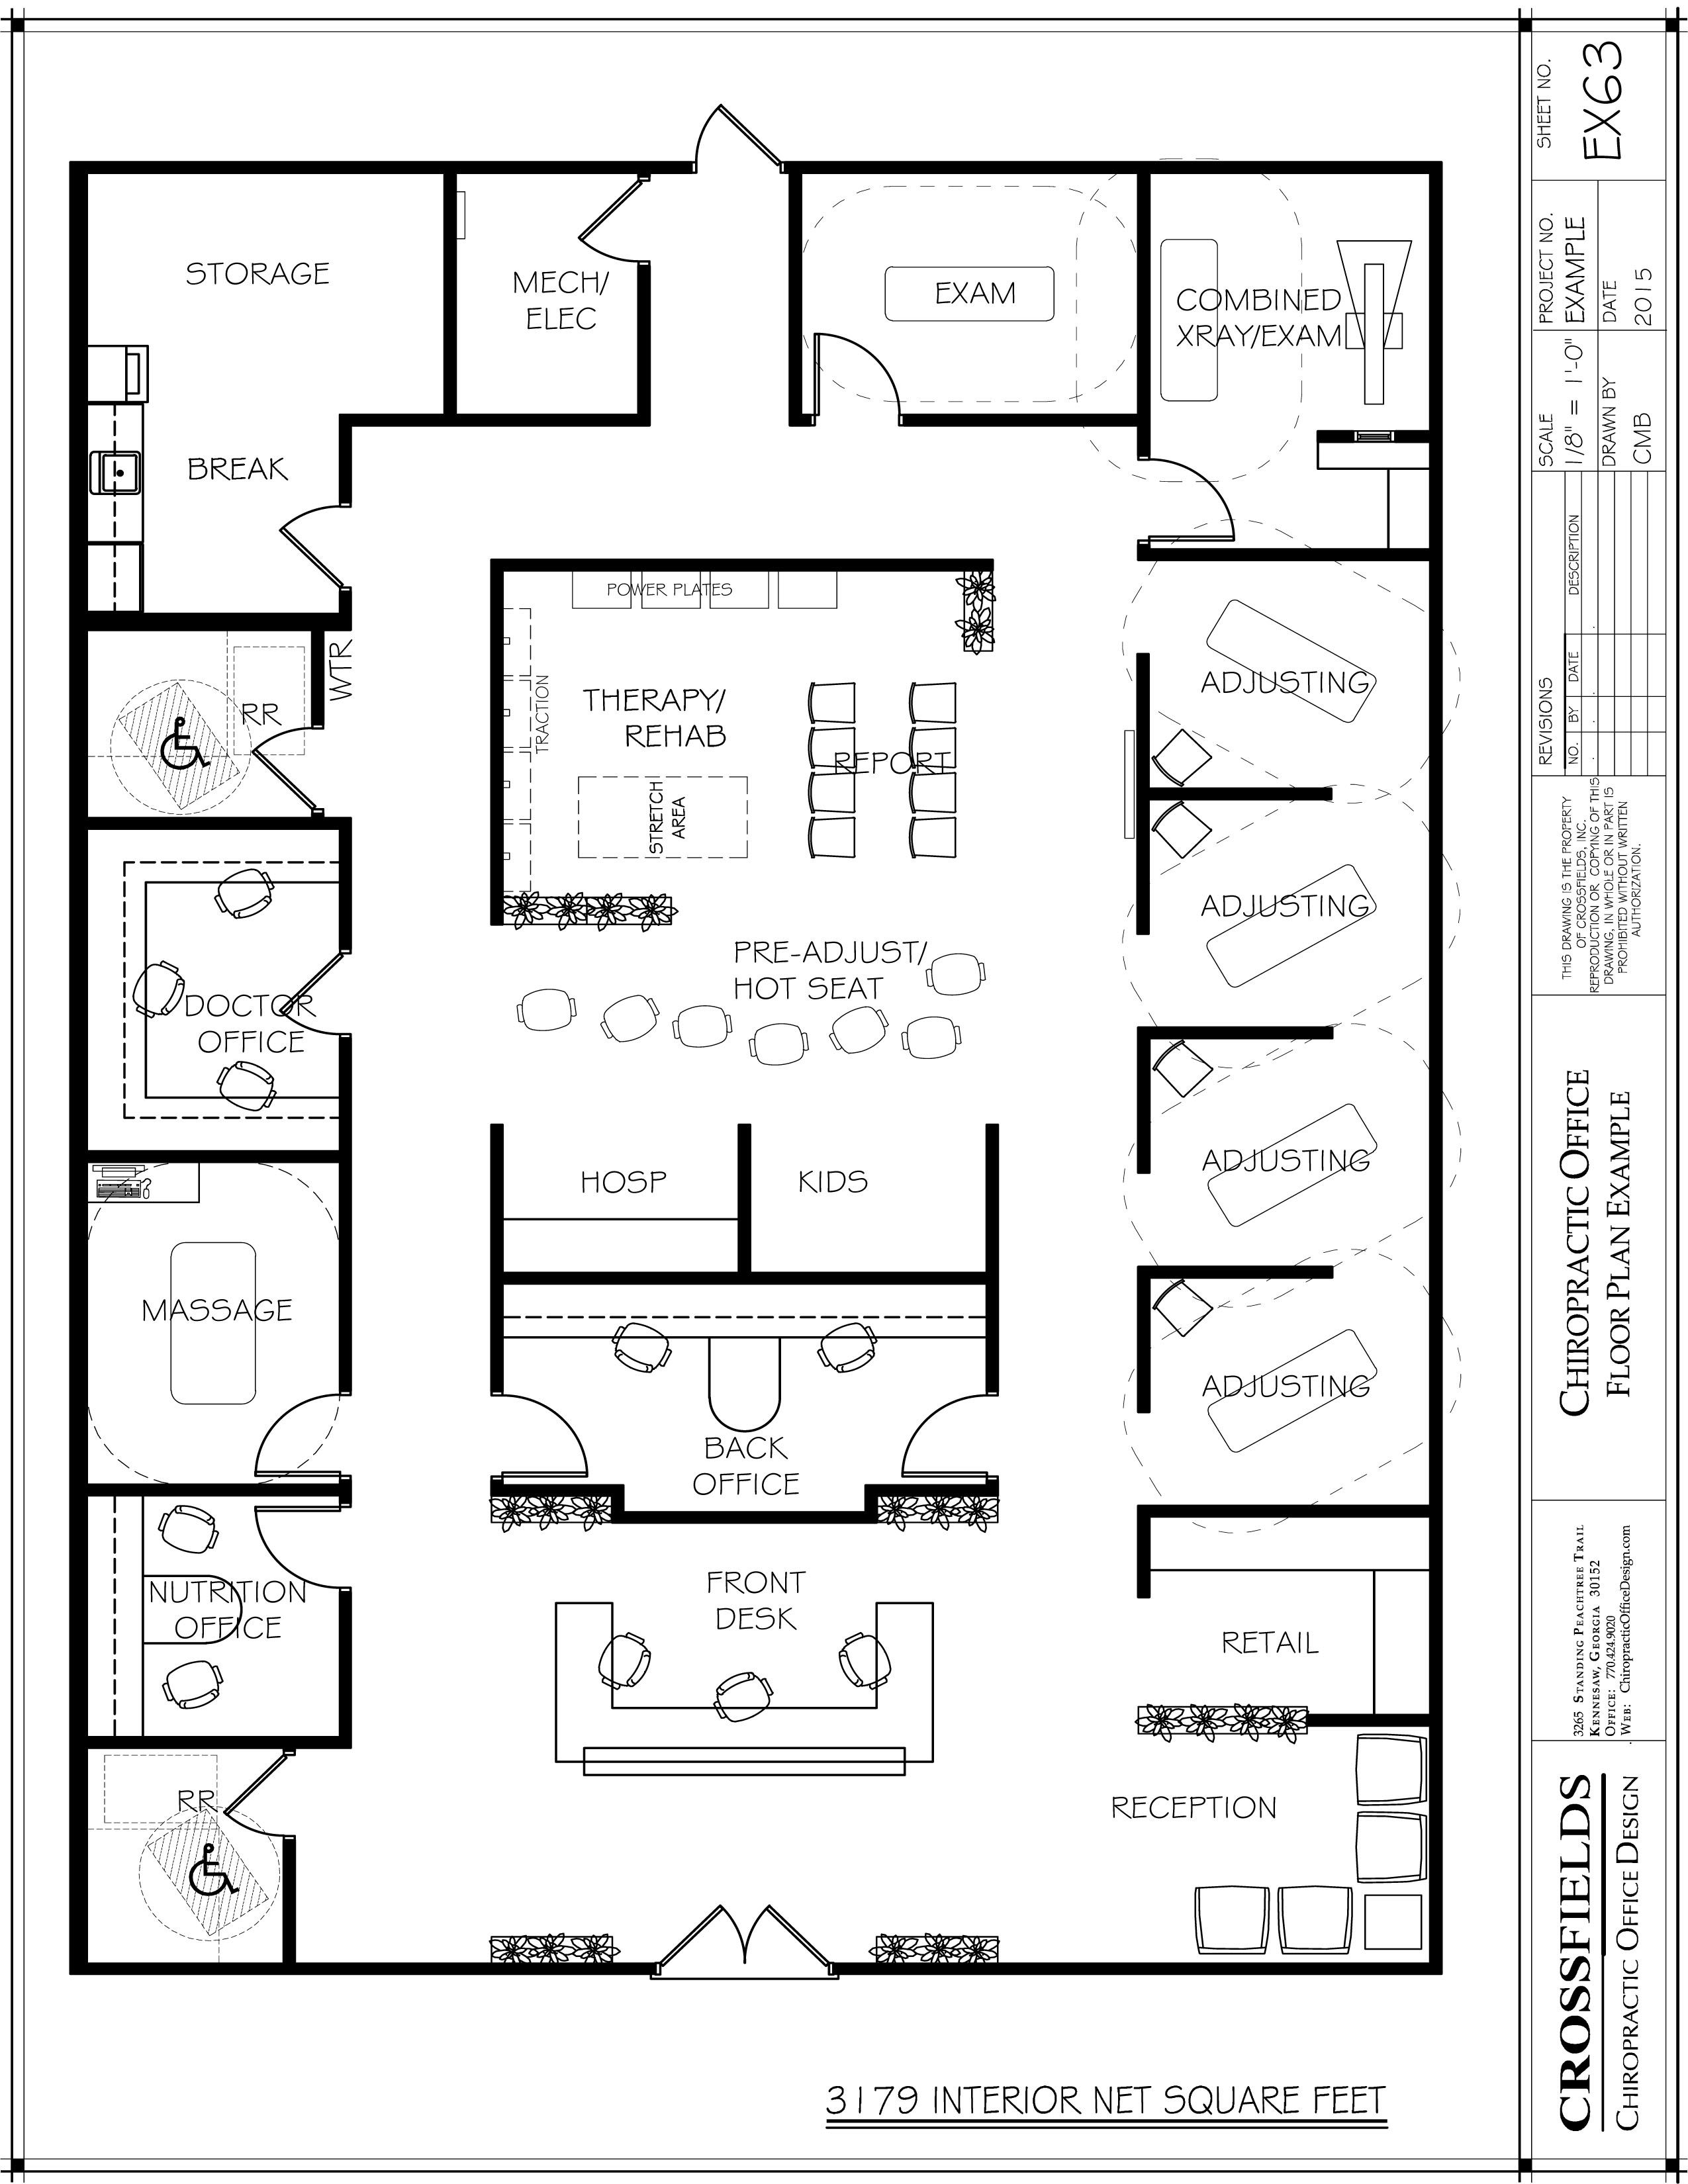 small resolution of clinic layout diagrams wiring diagram blogclinic layout diagrams wiring diagram chiropractic office floor plans versatile medical